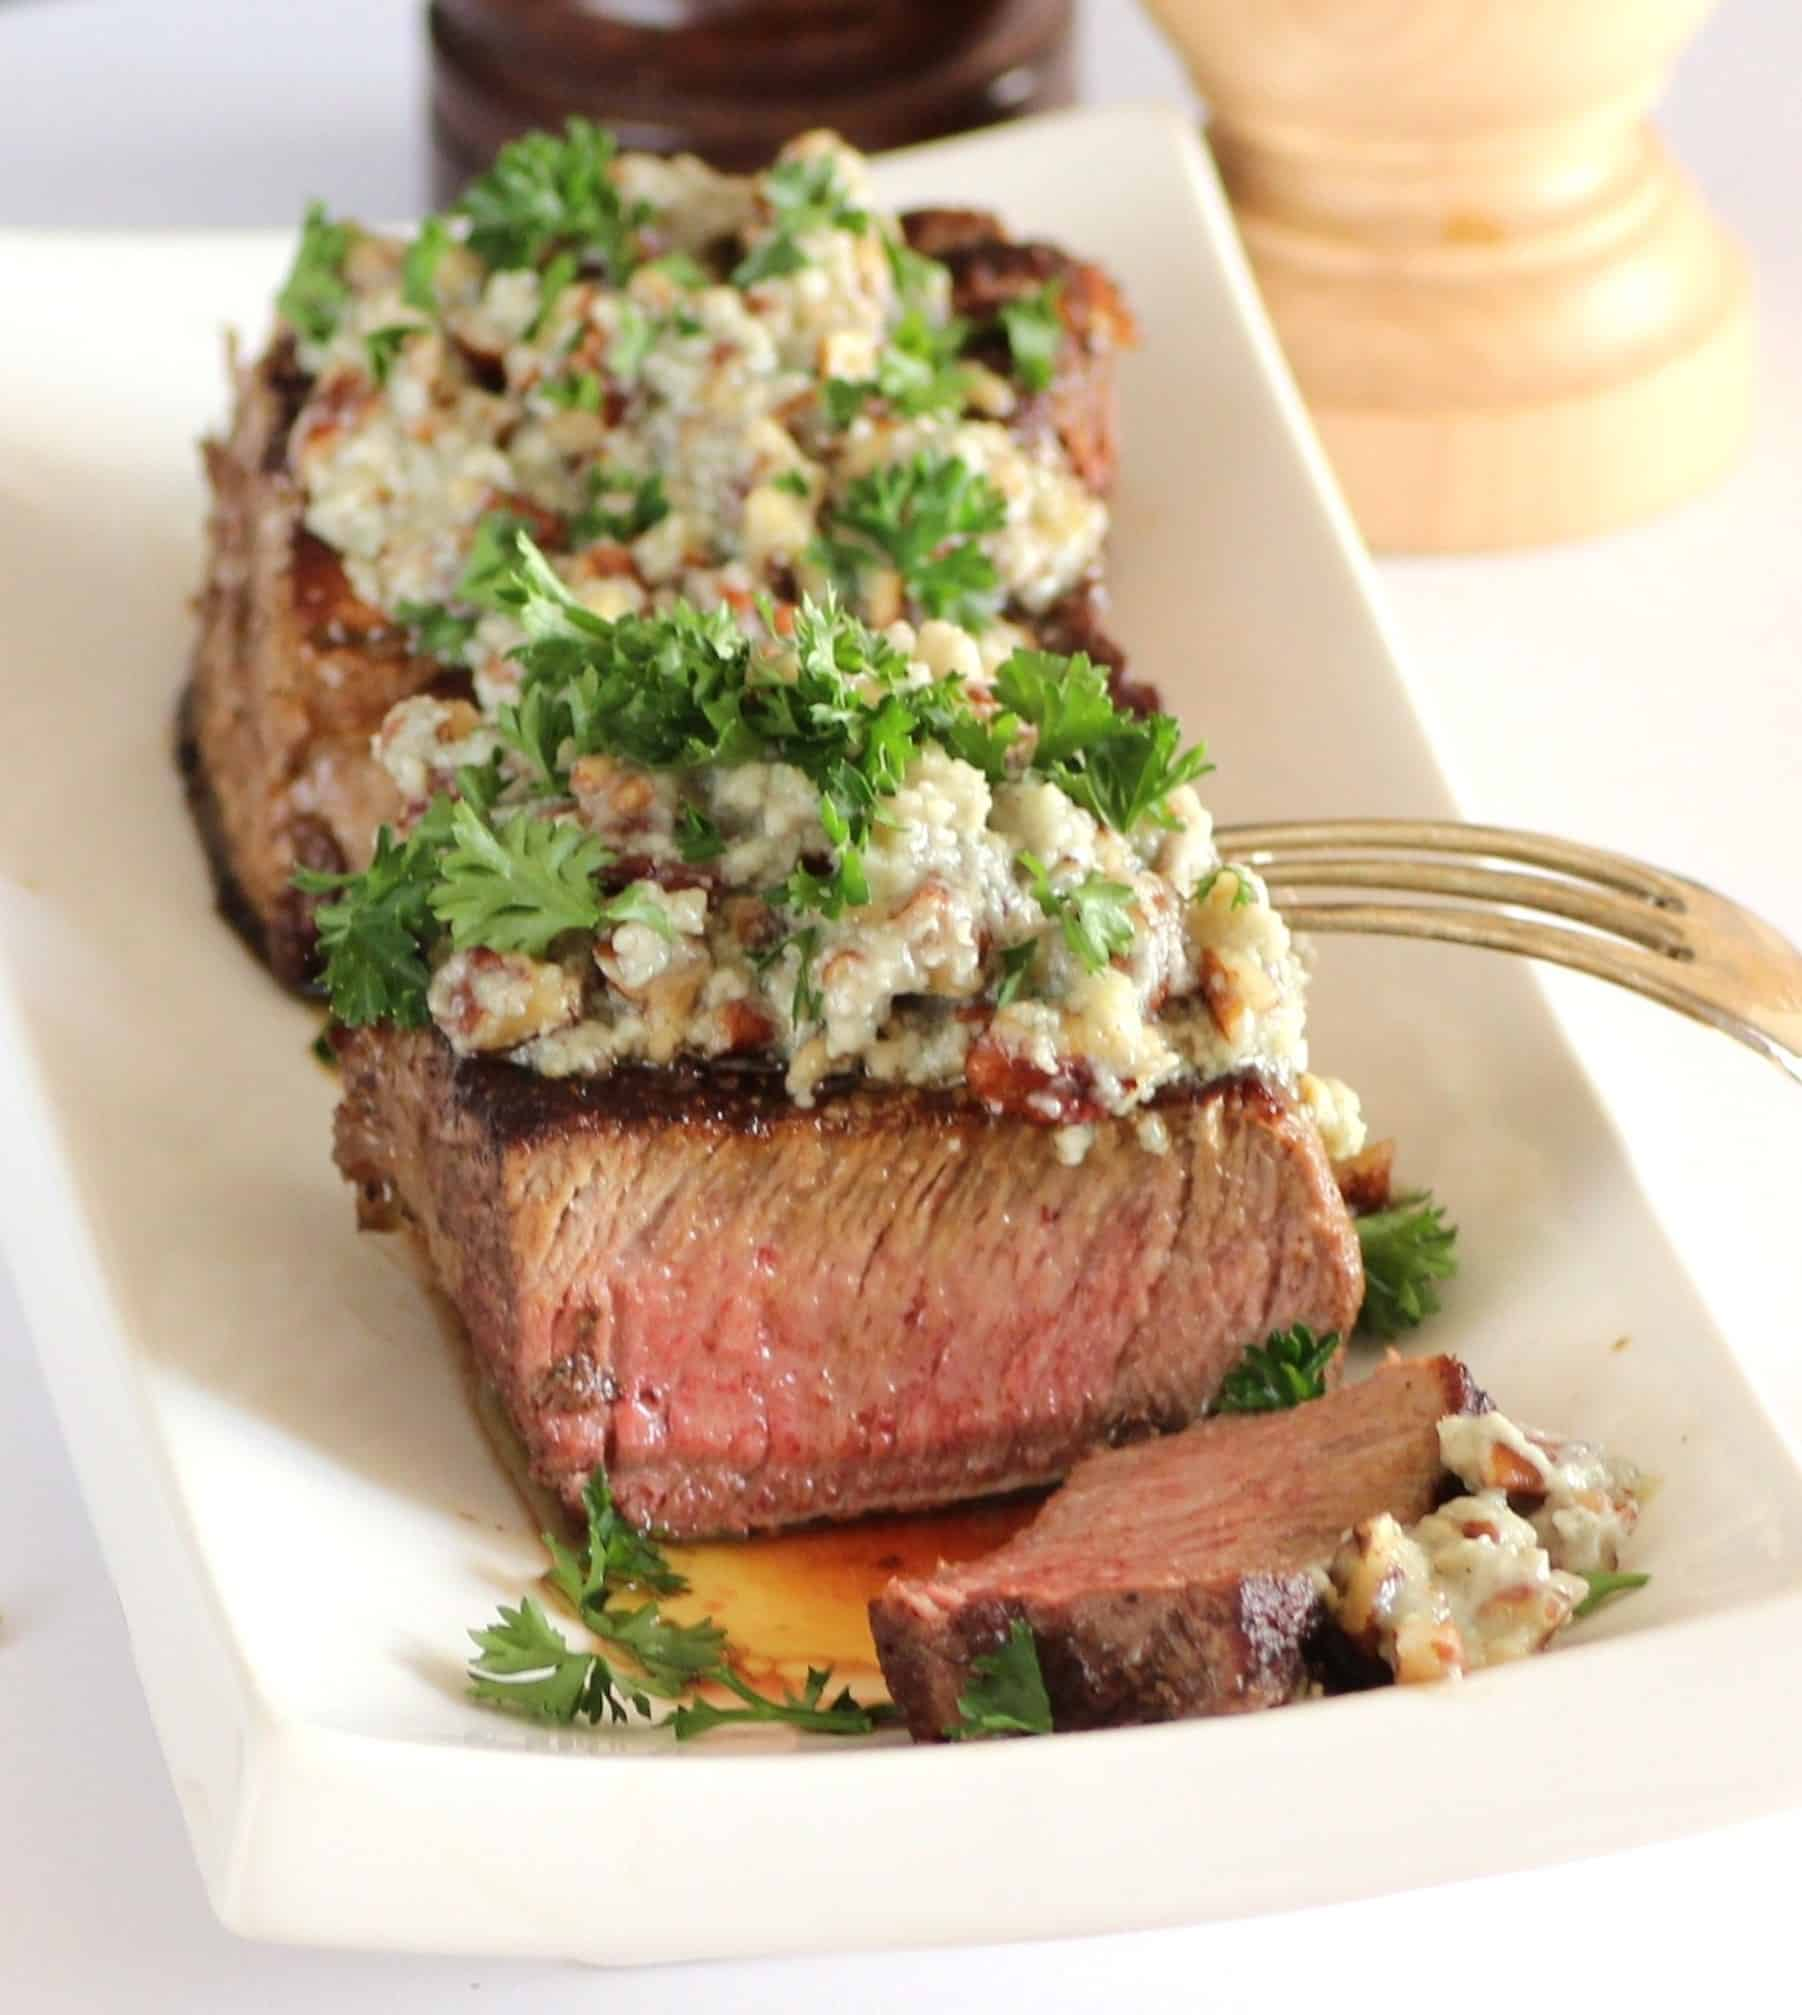 Beef tenderloin with stilton pecan butter for dishes in 5 beef tenderloin with stilton pecan butter for dishes in 5 ingredients or less sundaysupper forumfinder Image collections